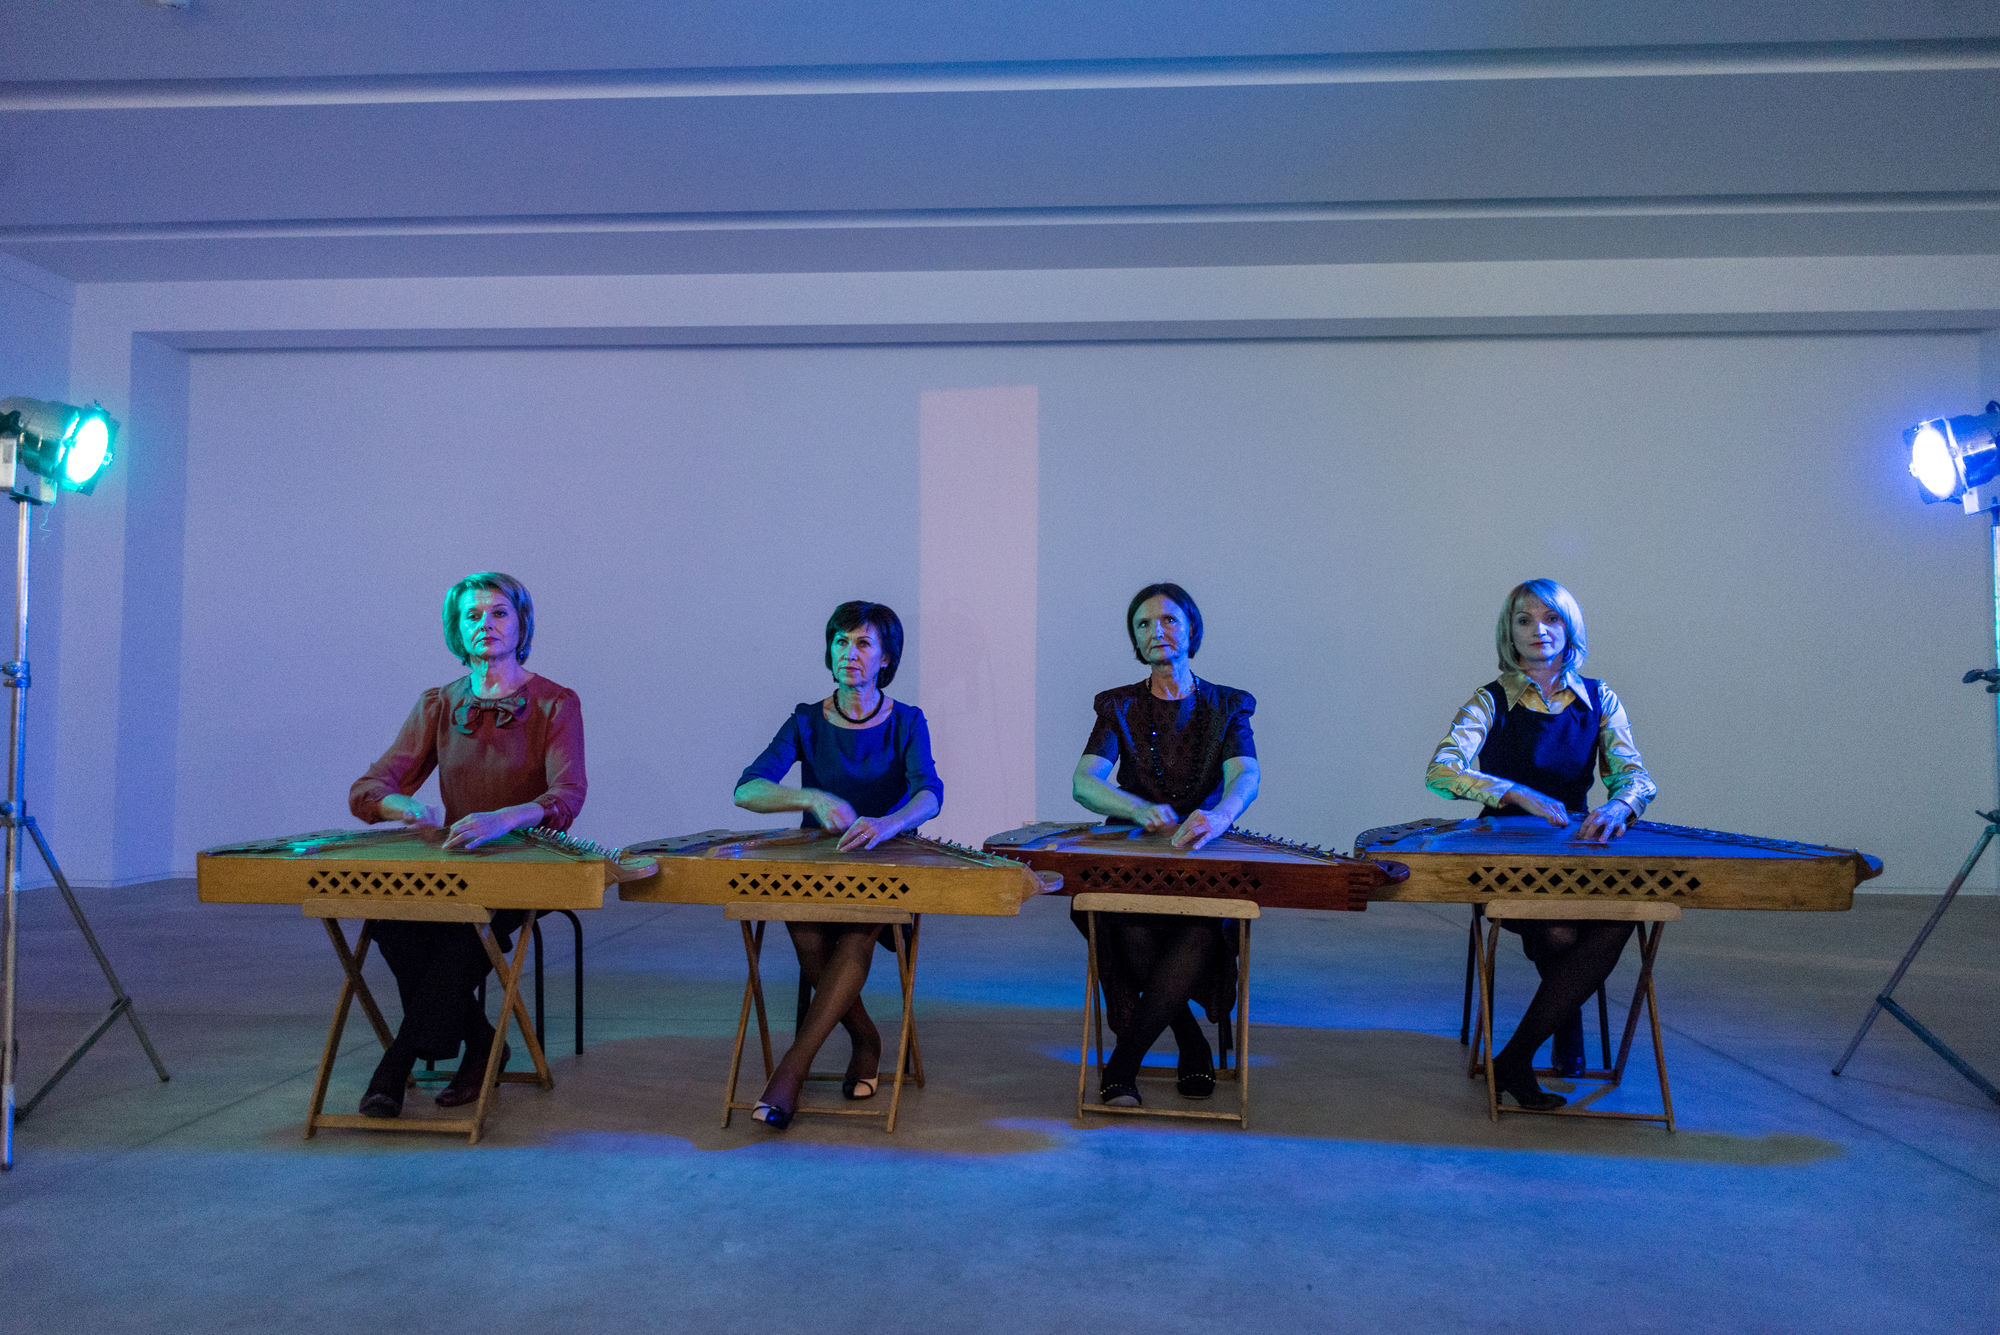 'Ladies', Lina Lapelyte, 2015, performance